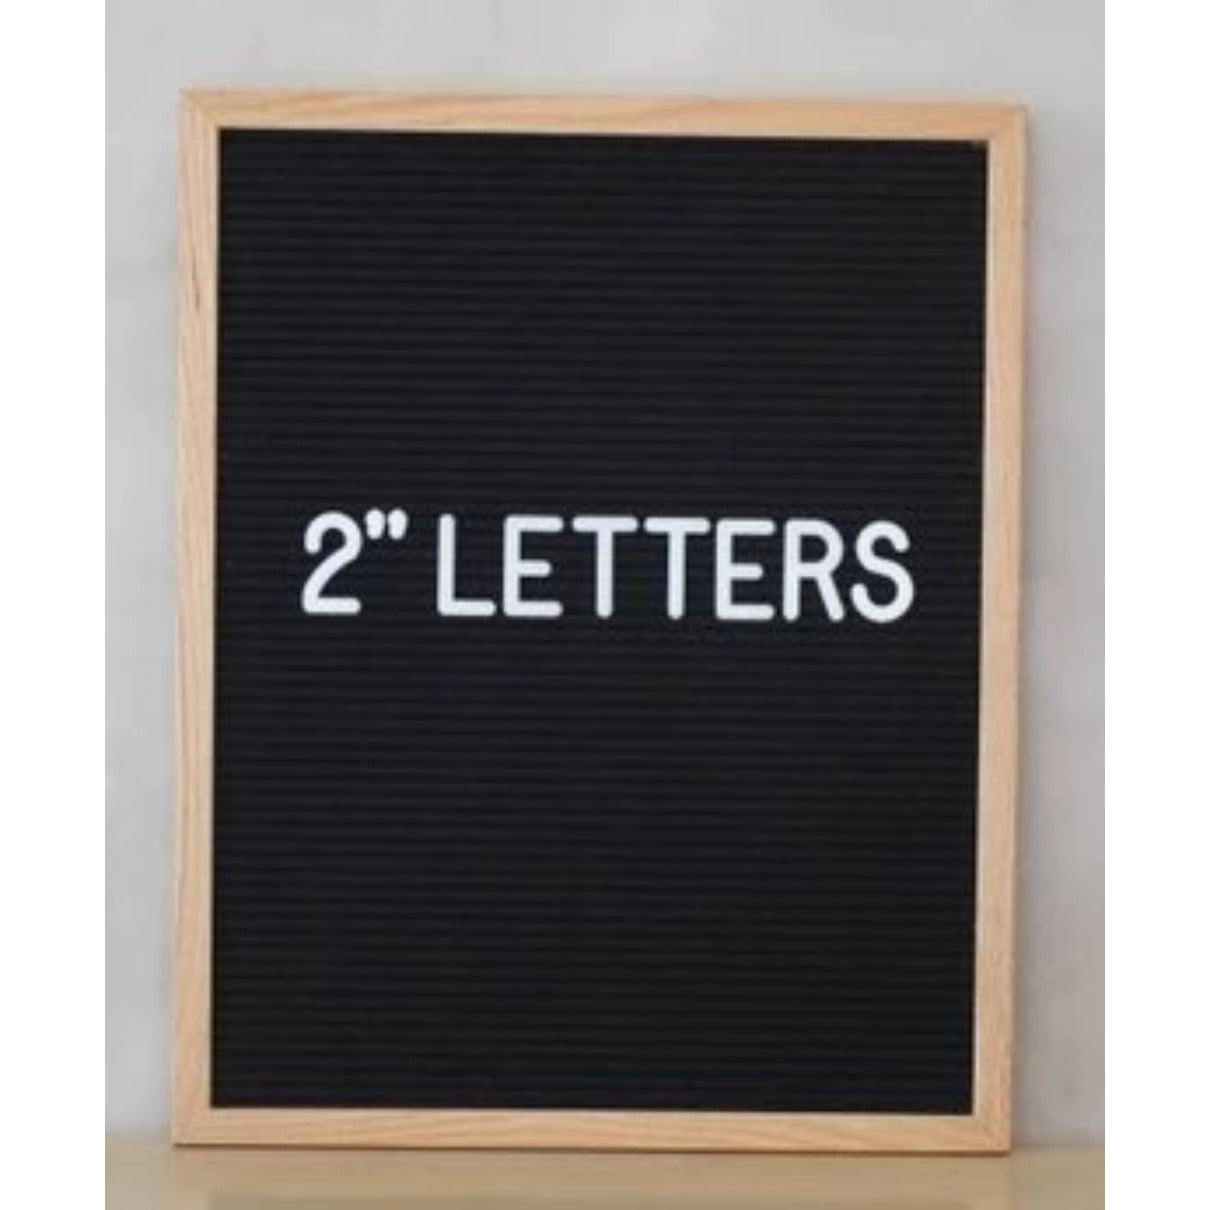 Felt Letter Board Letters - 2"